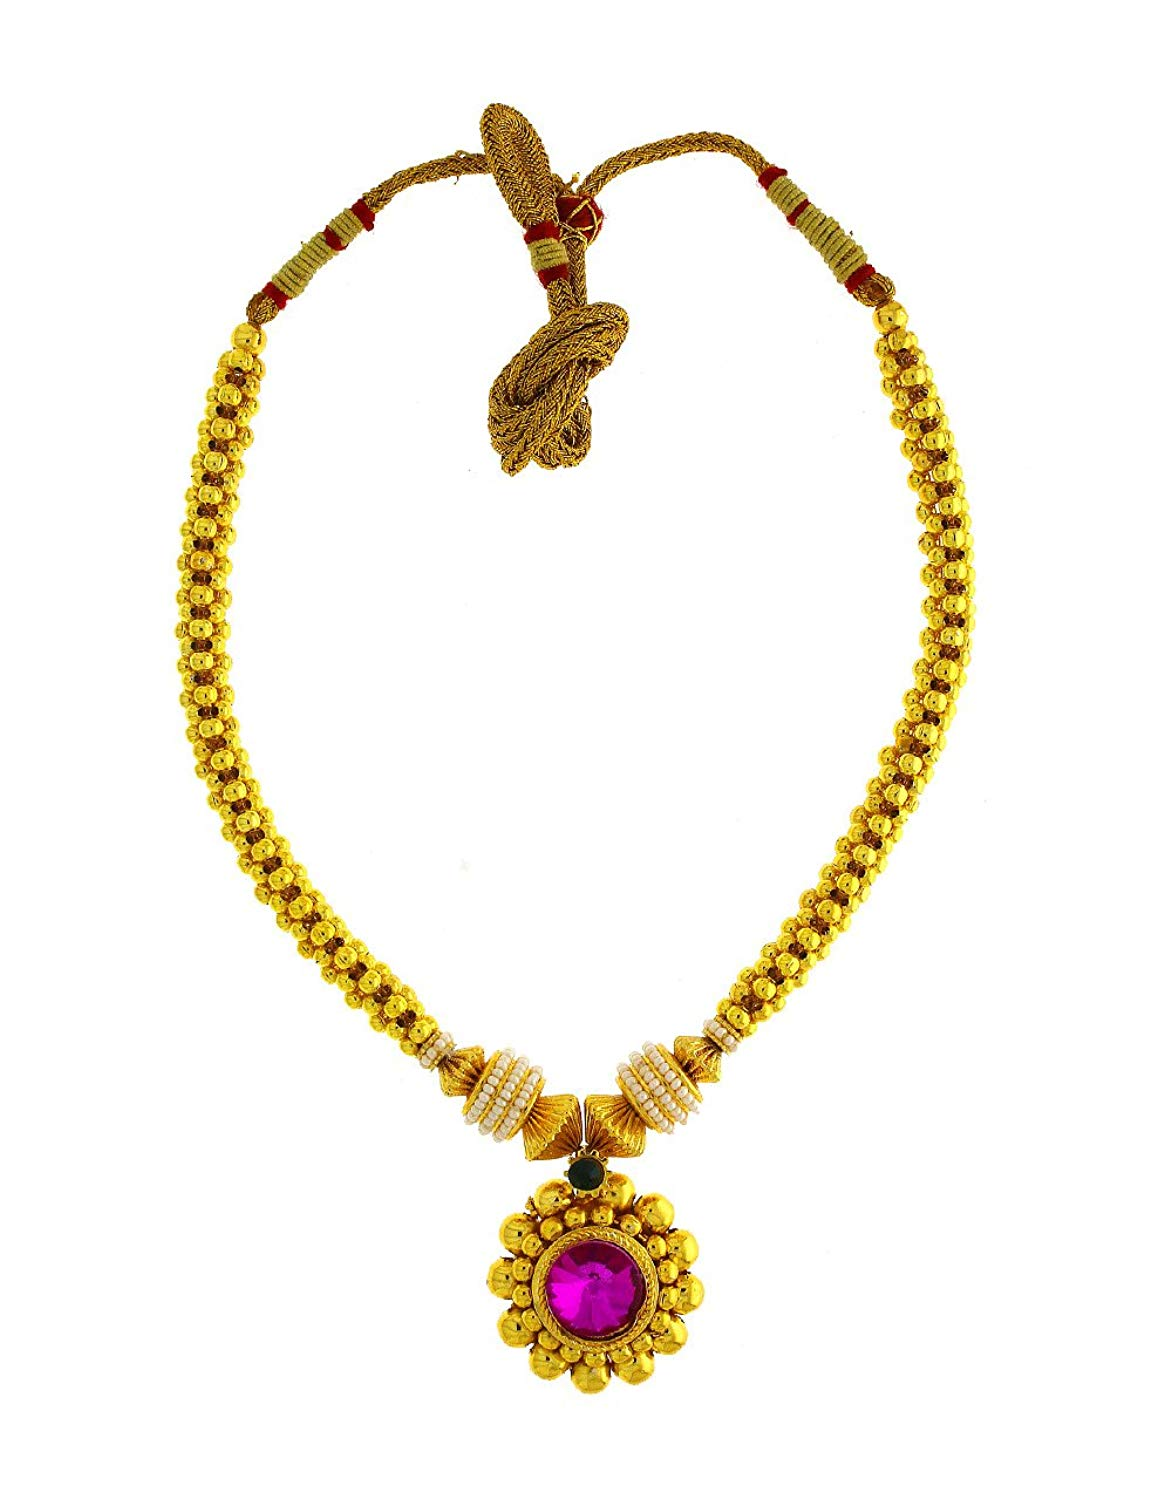 Anuradha Art Golden Finish Styled With Pink Colour Stone Designer Maharashtrian Look Thushi Necklace For Women/Girls